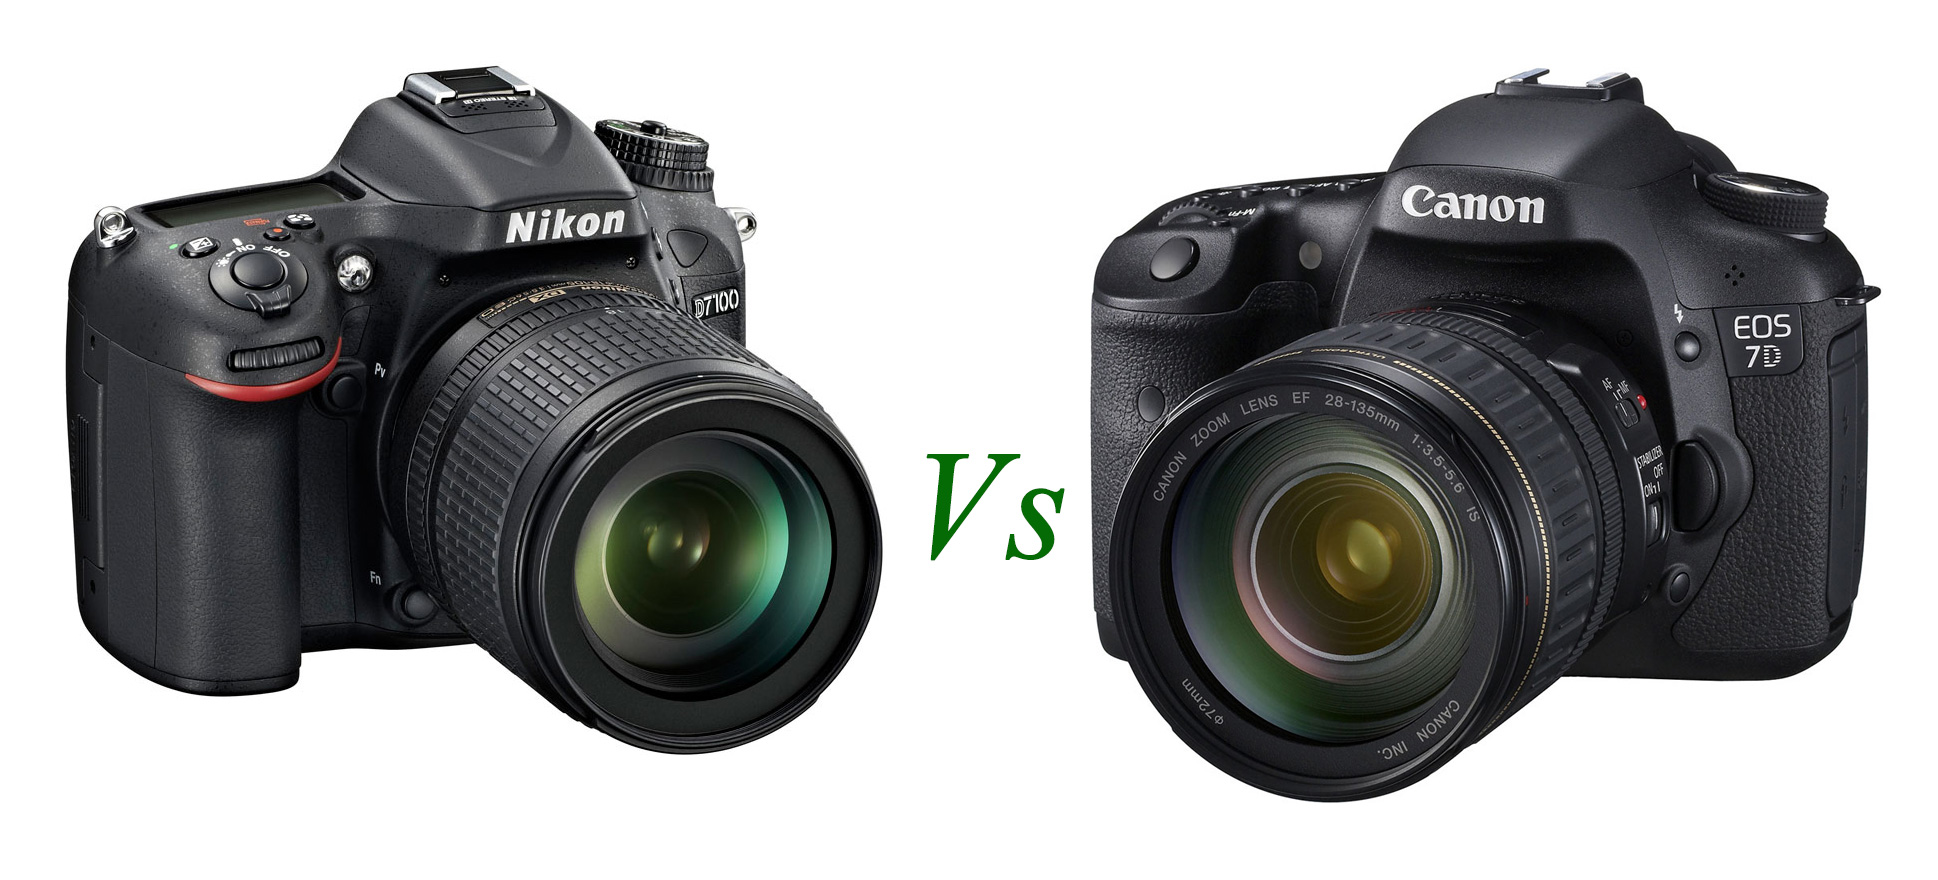 Here is a specs comparison on new released Nikon D7100 and Canon EOS